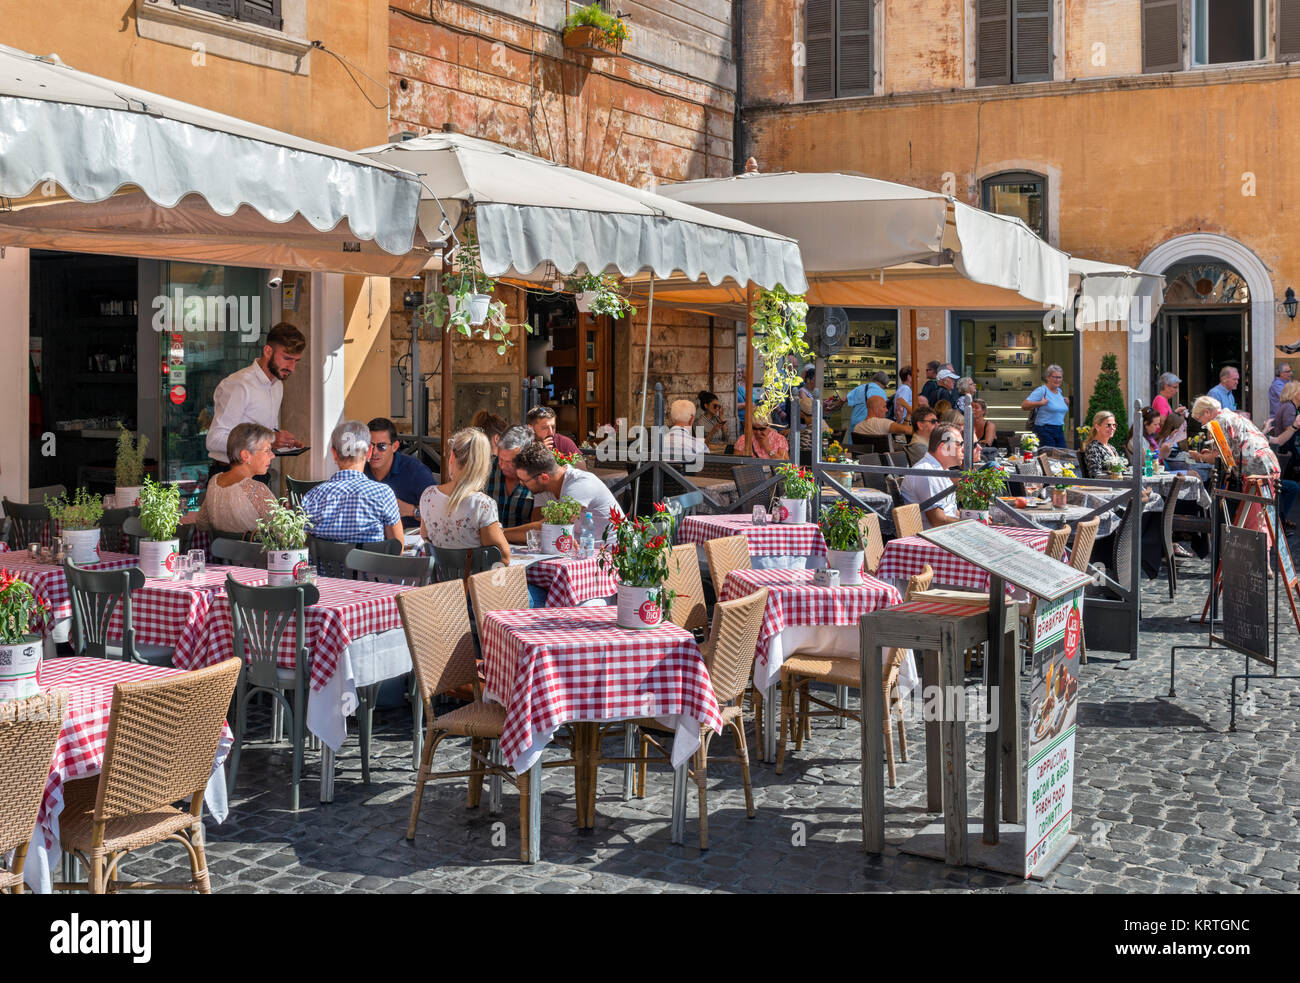 Sidewalk restaurant on Piazza della Rotonda in the centro storico, Rome, Italy Stock Photo